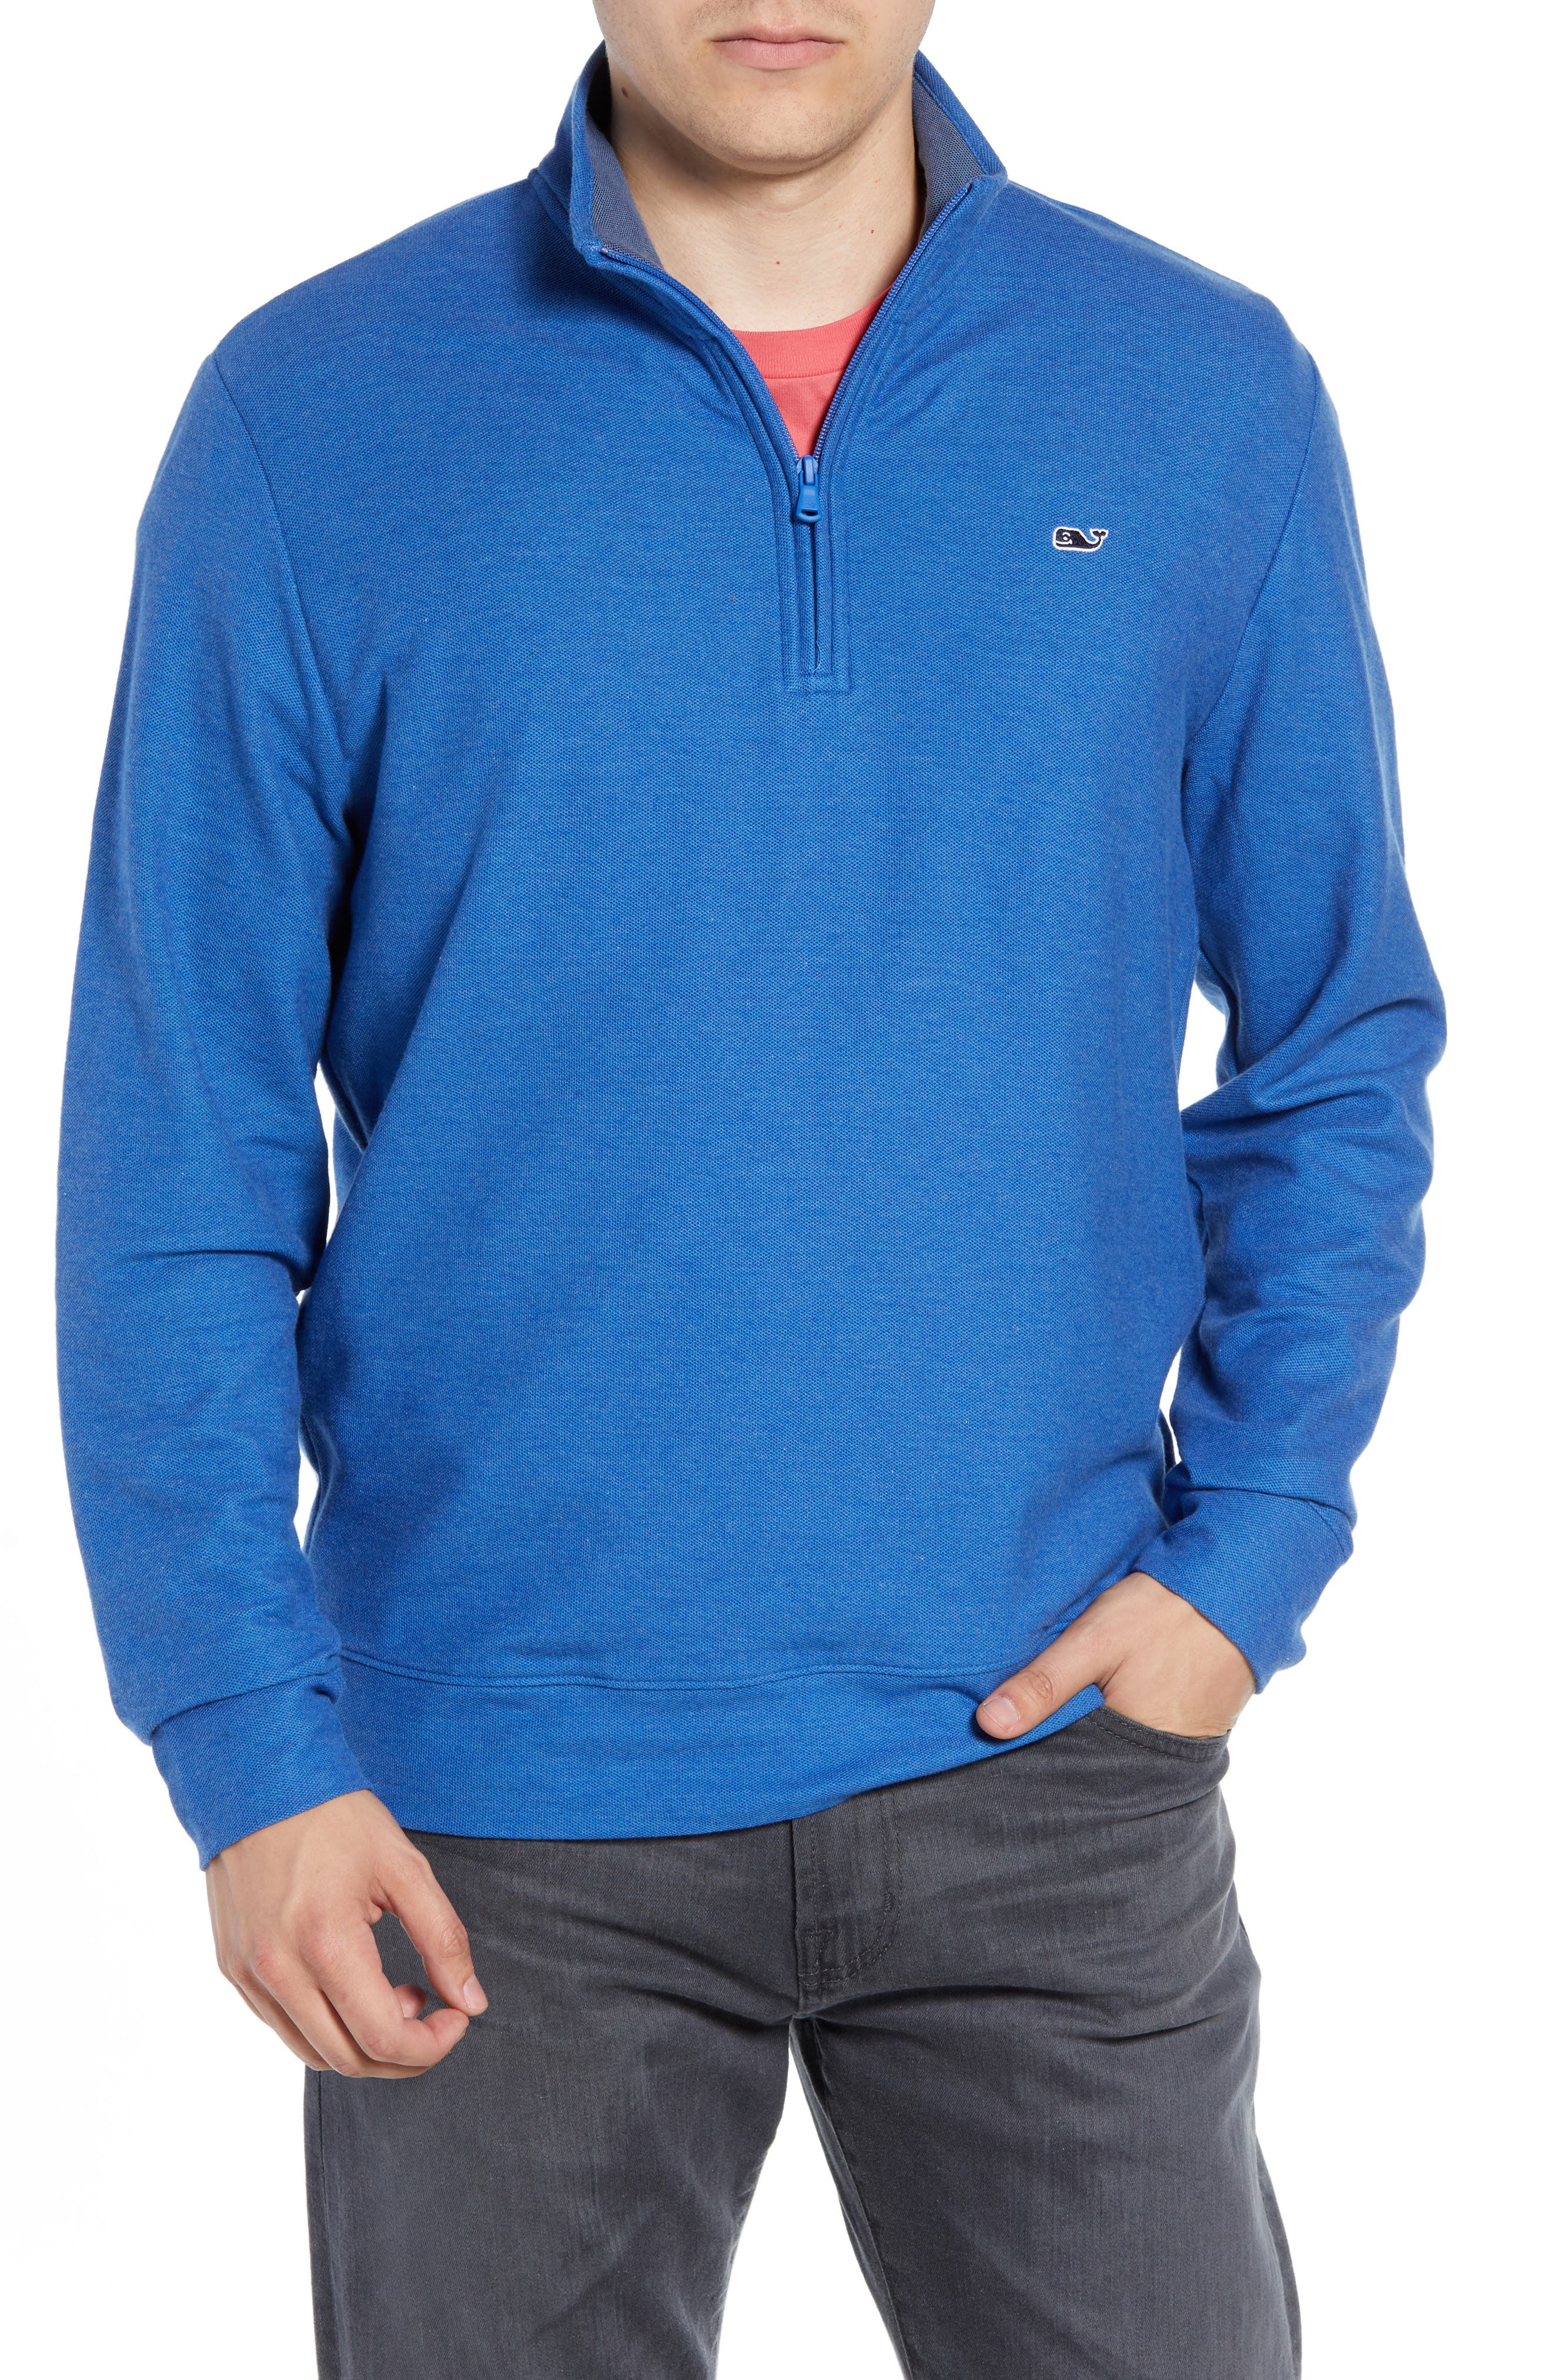 Breaker Saltwater Quarter Zip Pullover,                         Main,                         color, HULL BLUE